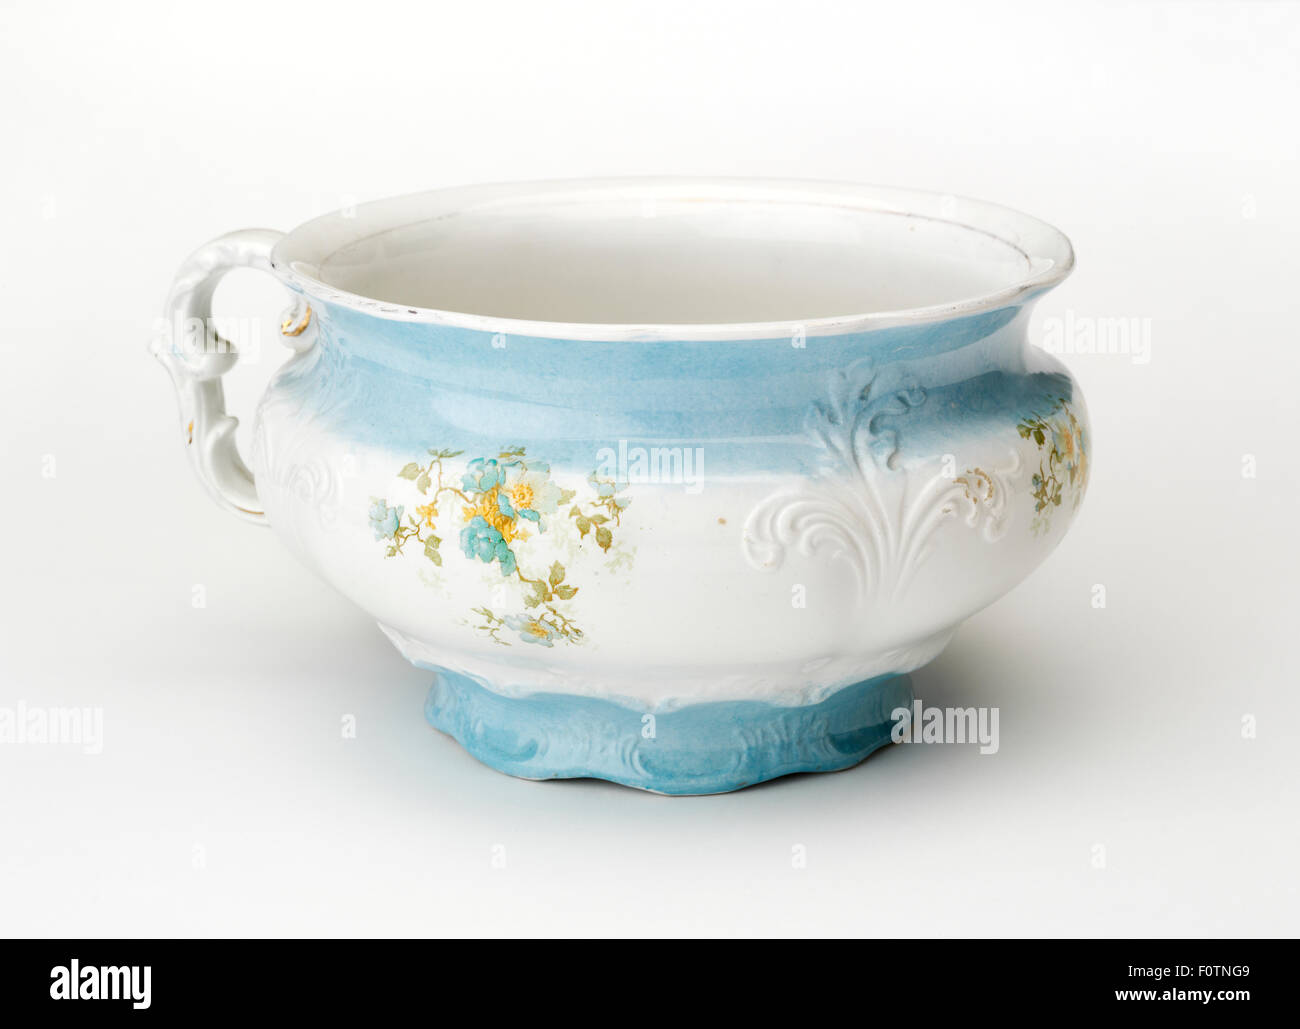 Bourdaloue Pot De Chambre Pot De Chambre Banque D Images Photo Stock 86595609 Alamy